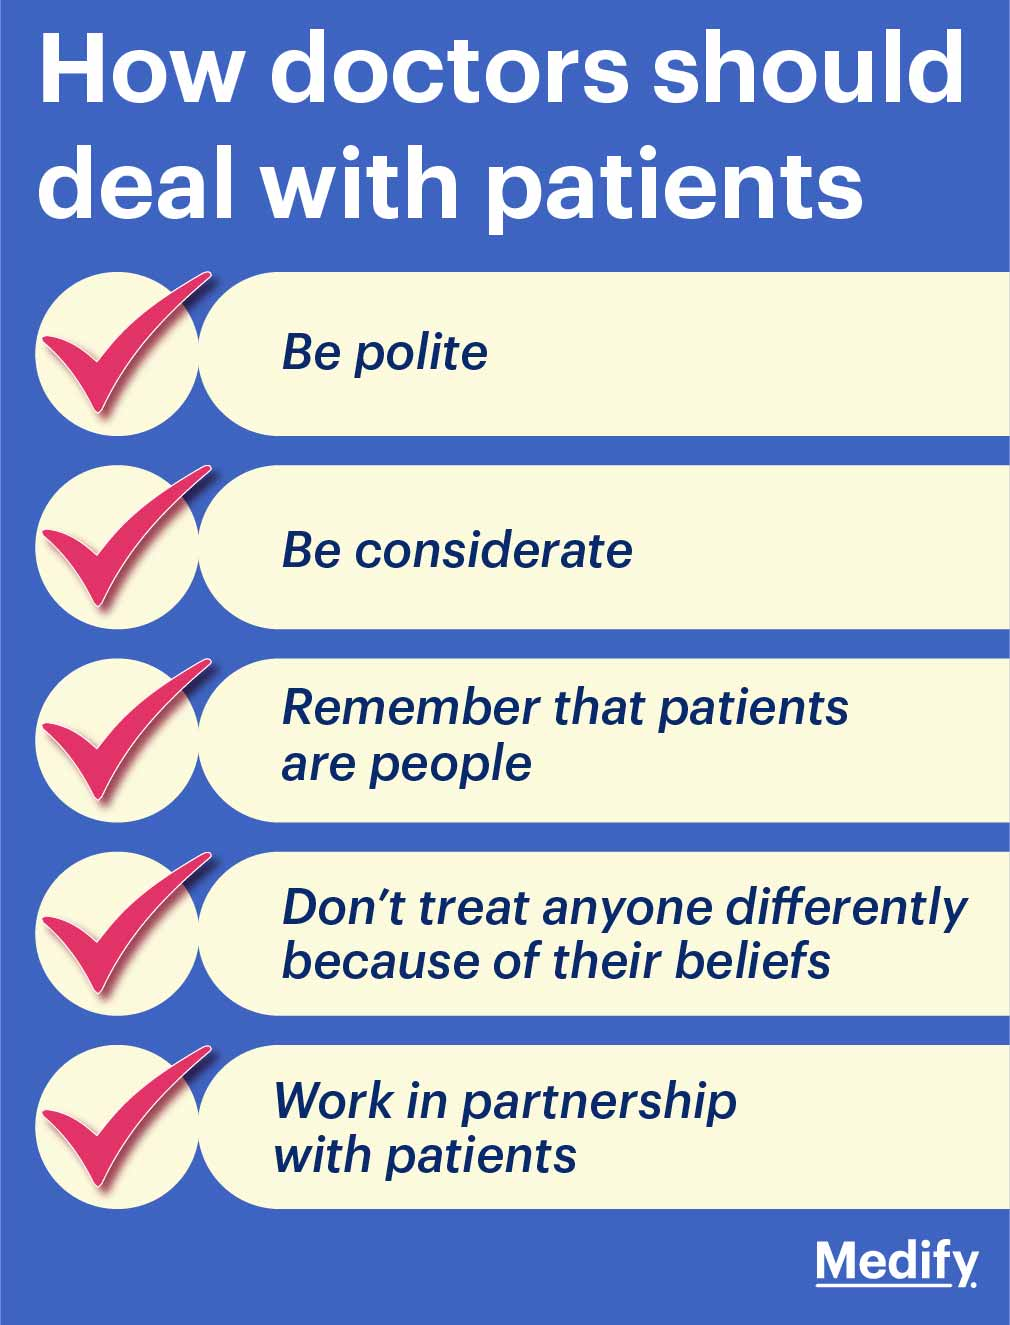 How doctors should deal with patients. An infographic.